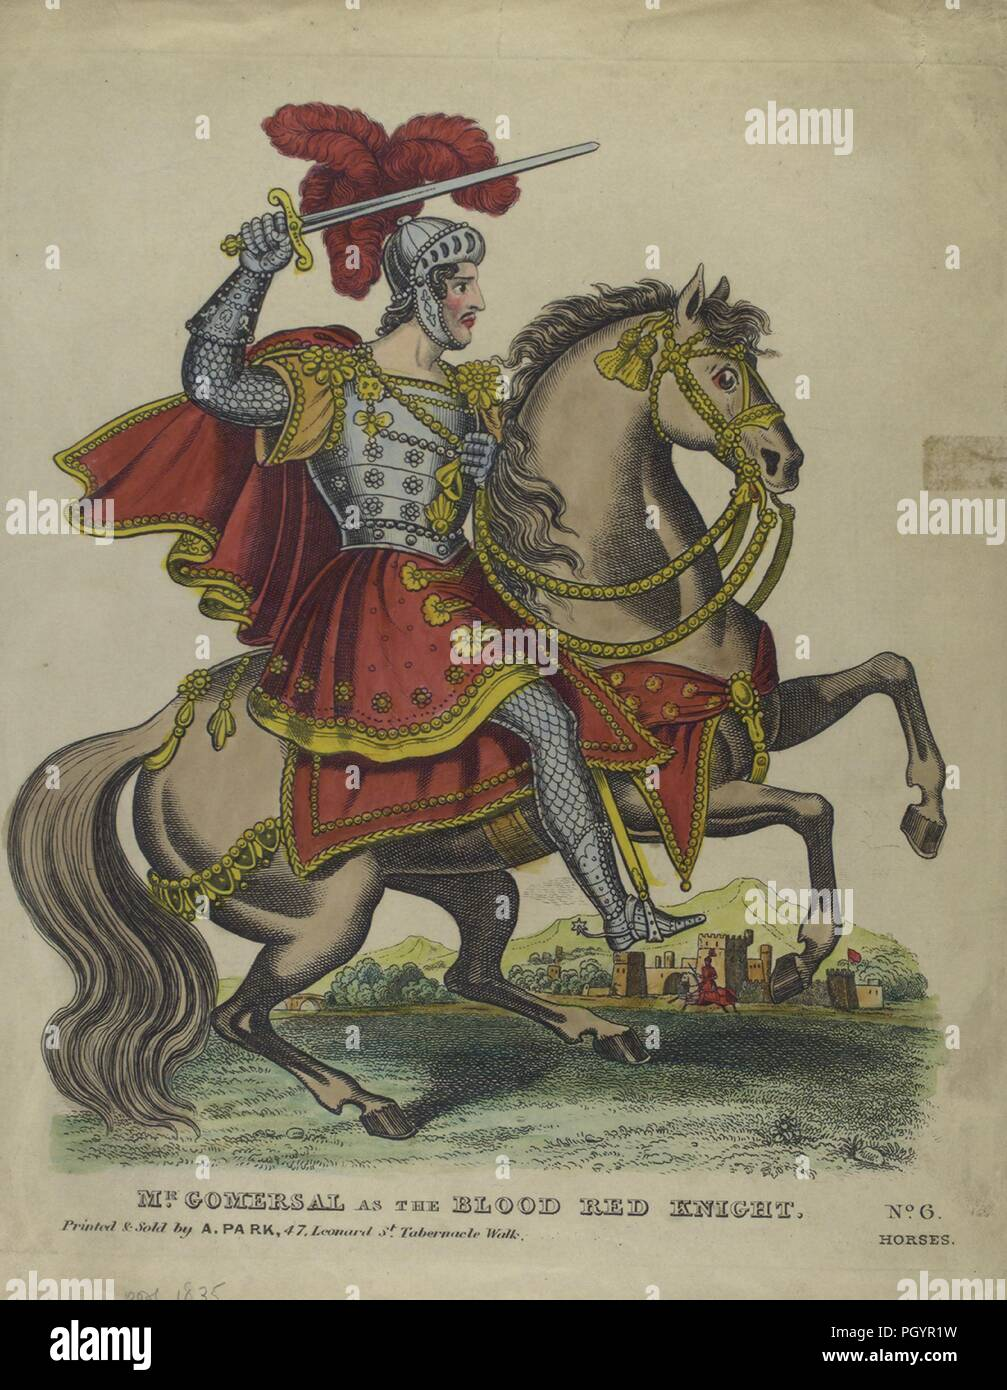 Colour print, likely hand-painted, depicting a full-length, profile view of British actor Mr Edward Alexander Gomersal, with a serious expression on his face, wielding a sword in one hand, dressed in a silver helmet, armor and chain mail, and a red tunic and cape, and riding on the back of a horse with red caparisoning, while performing the titular role from the play 'The Blood Red Knight, ' by William Barrymore, ' published in London by A Park, 1835. From the New York Public Library. () - Stock Image